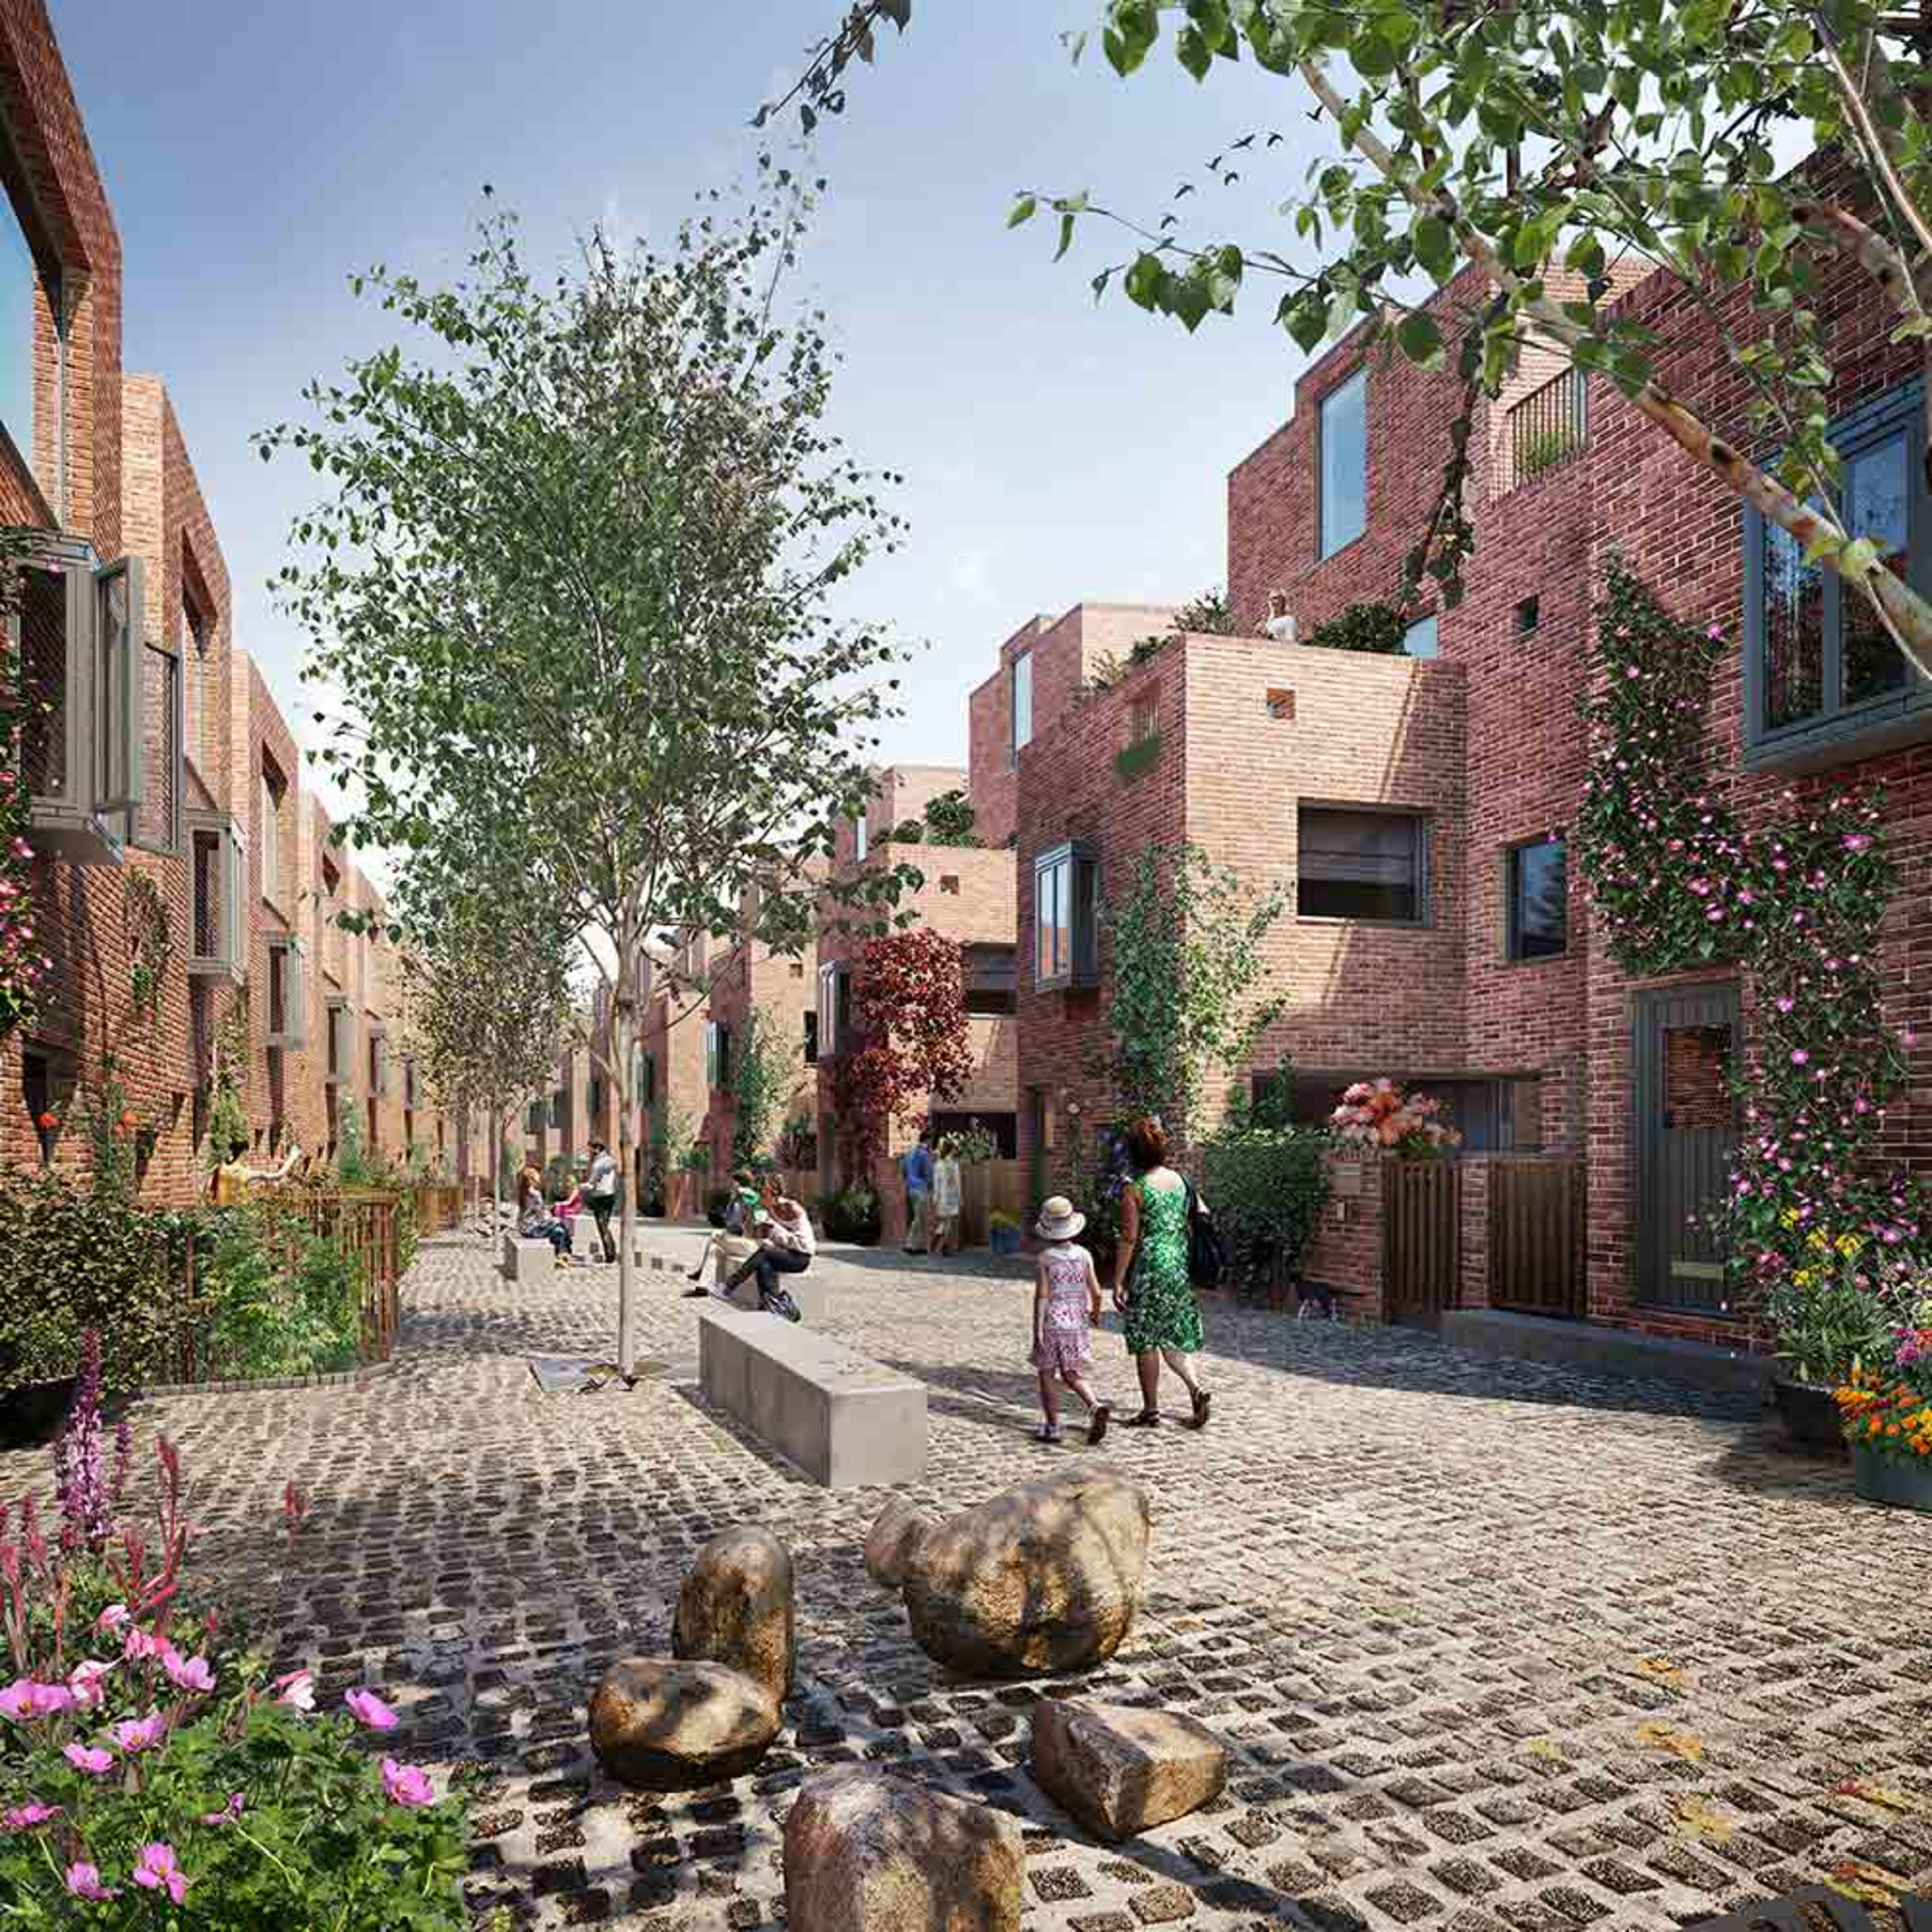 CGI of a tree-lined new build mews street with people walking